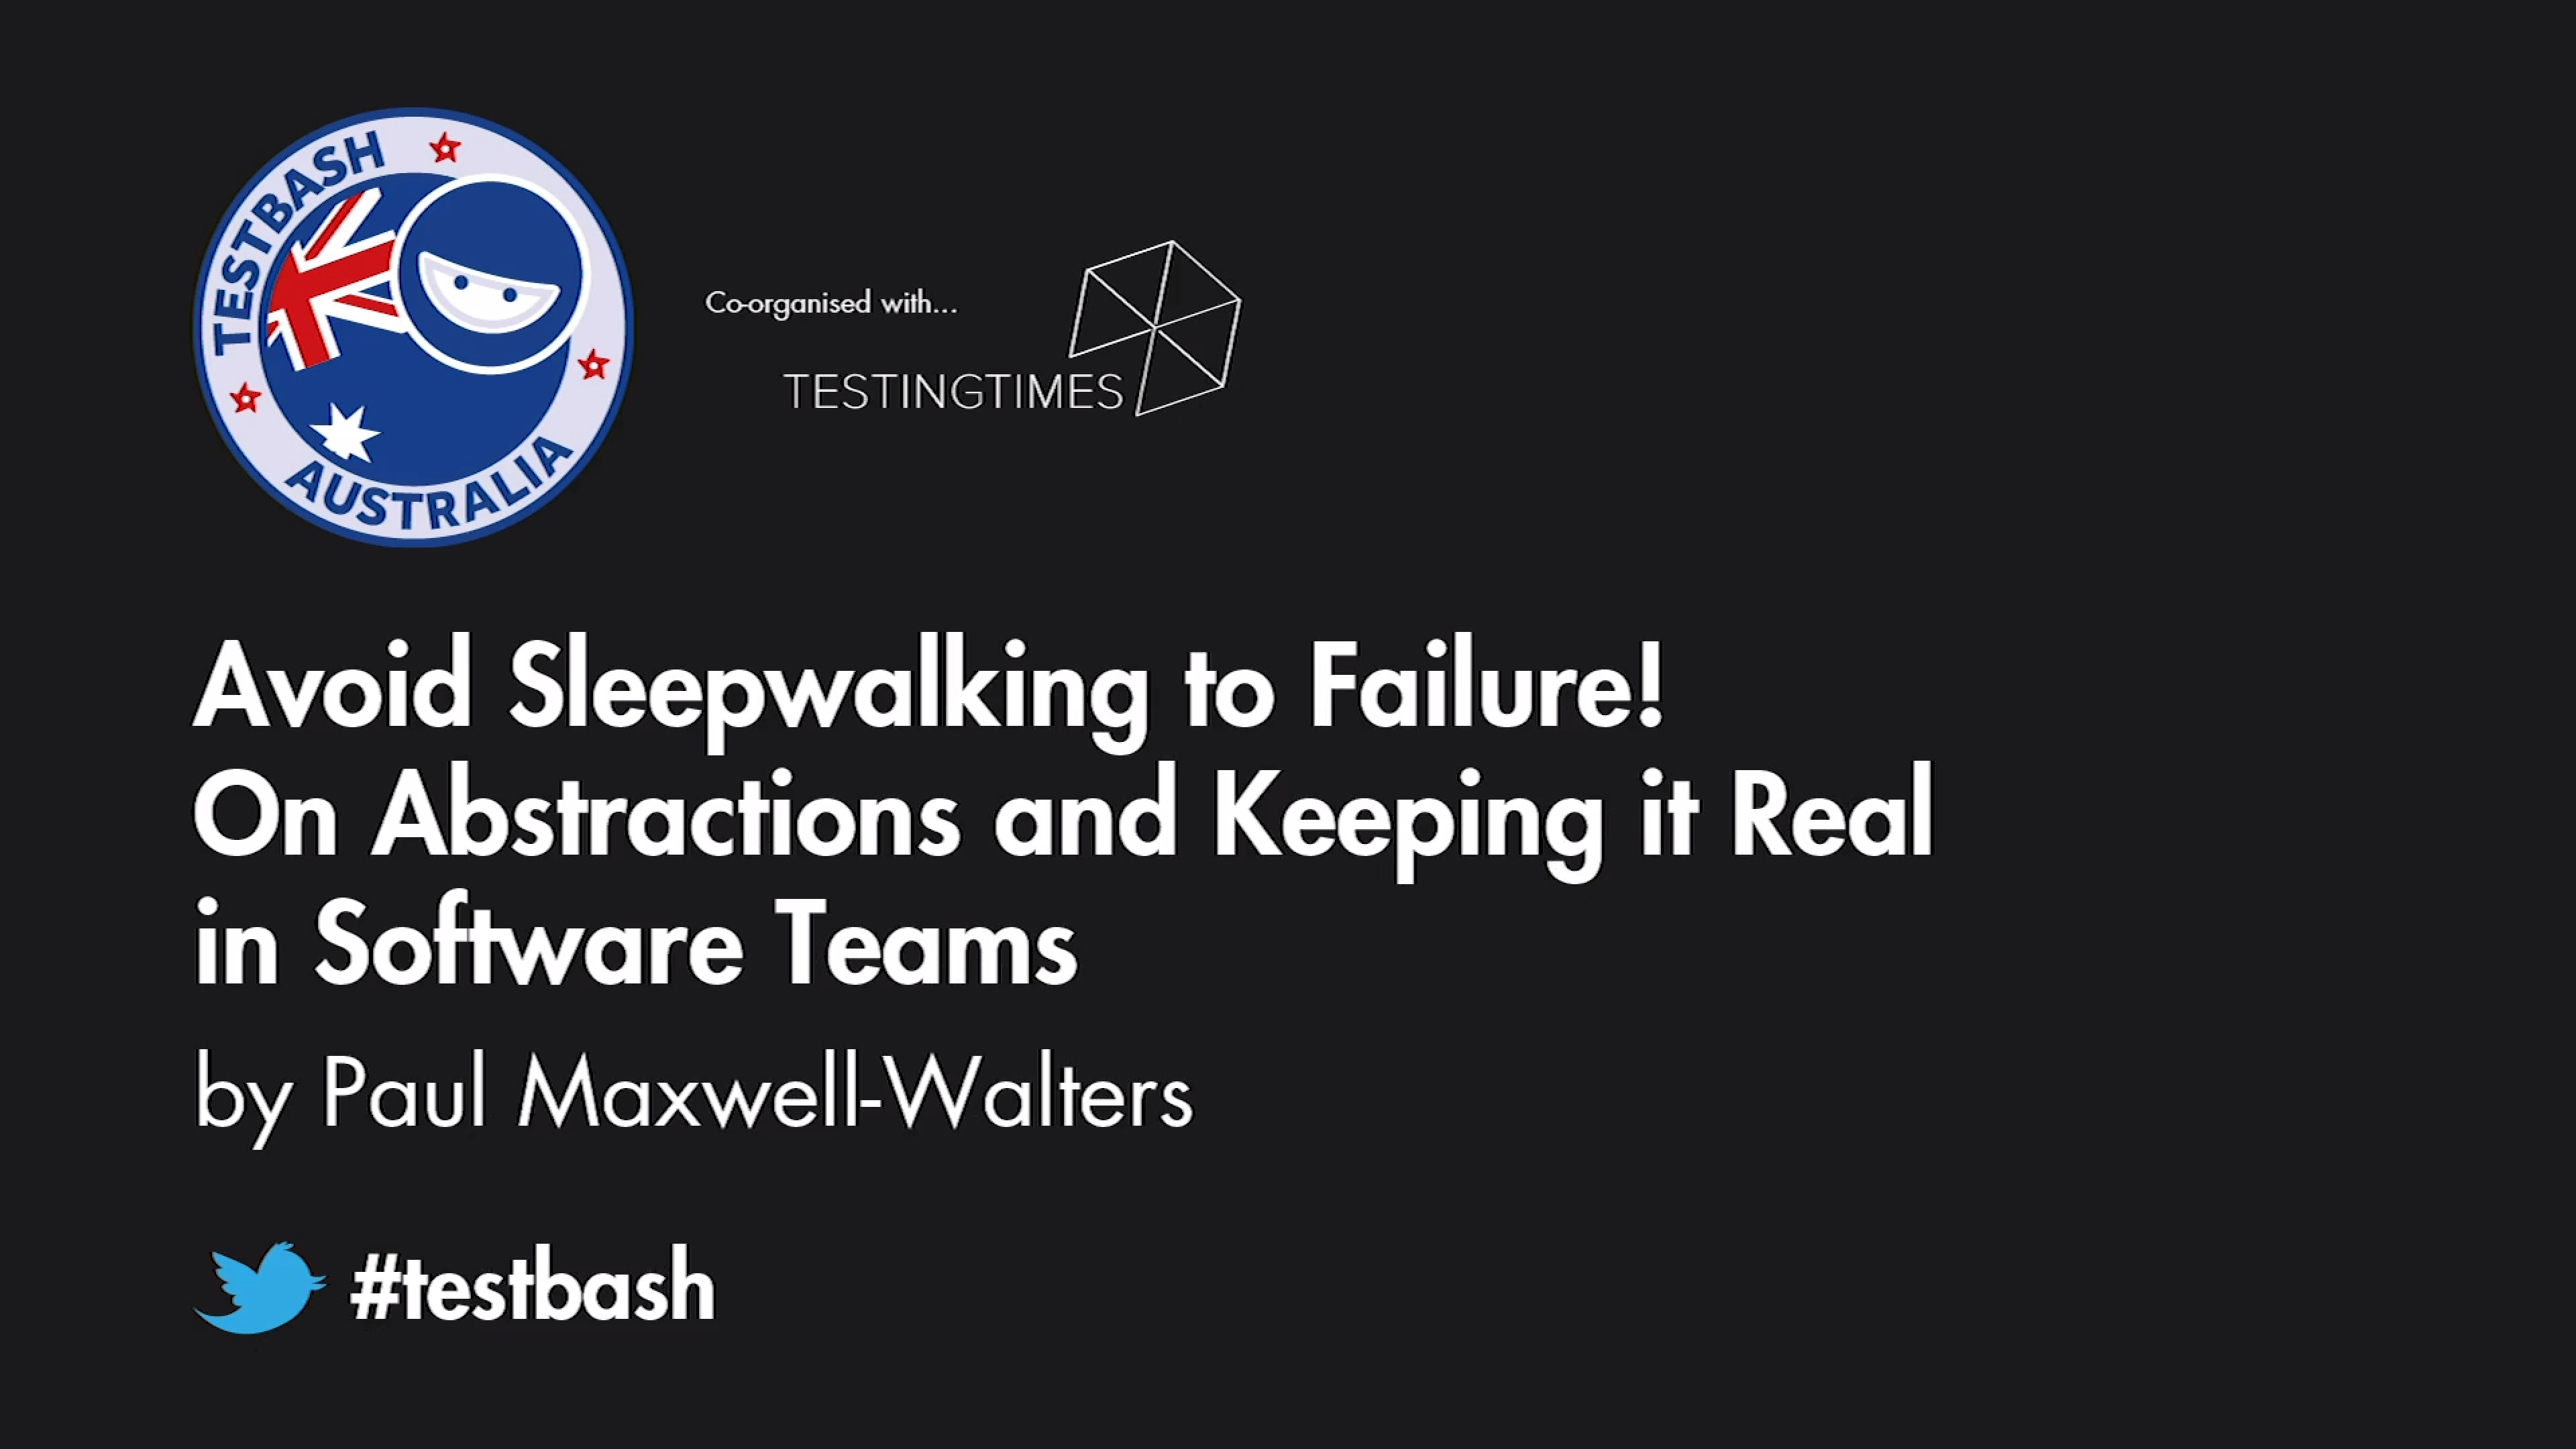 Avoid Sleepwalking to Failure! On Abstractions and Keeping it Real in Software Teams - Paul Maxwell-Walters